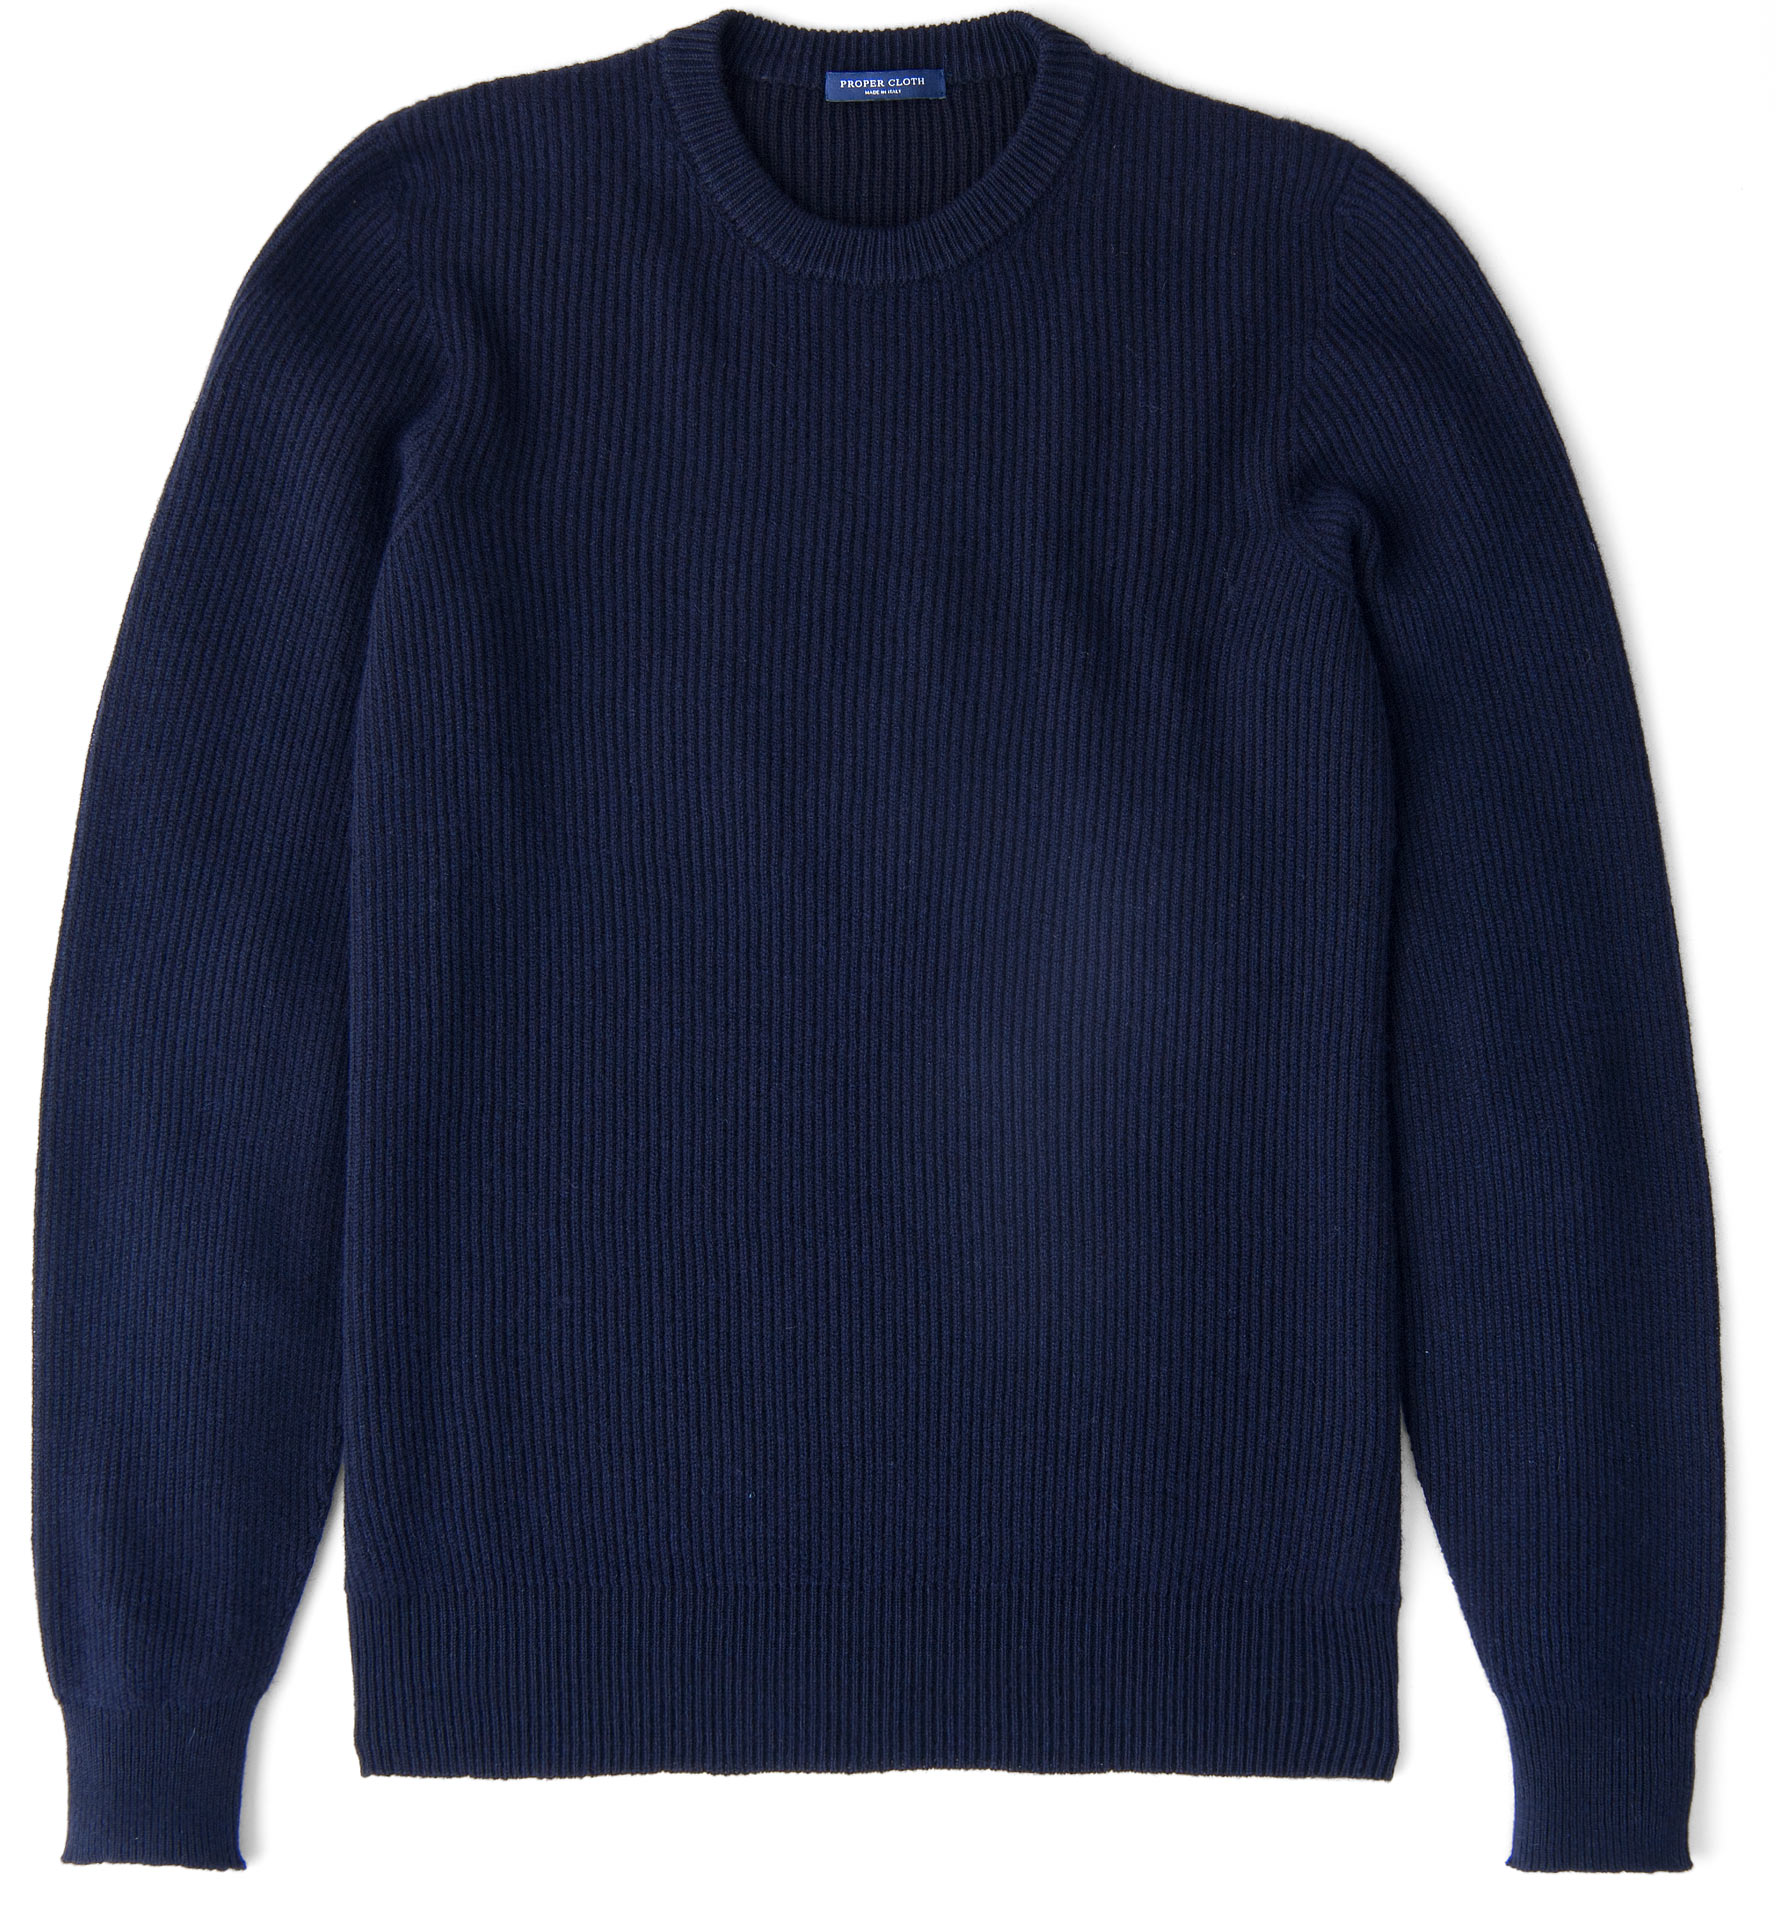 Zoom Image of Navy Ribbed Cotton and Cashmere Crewneck Sweater